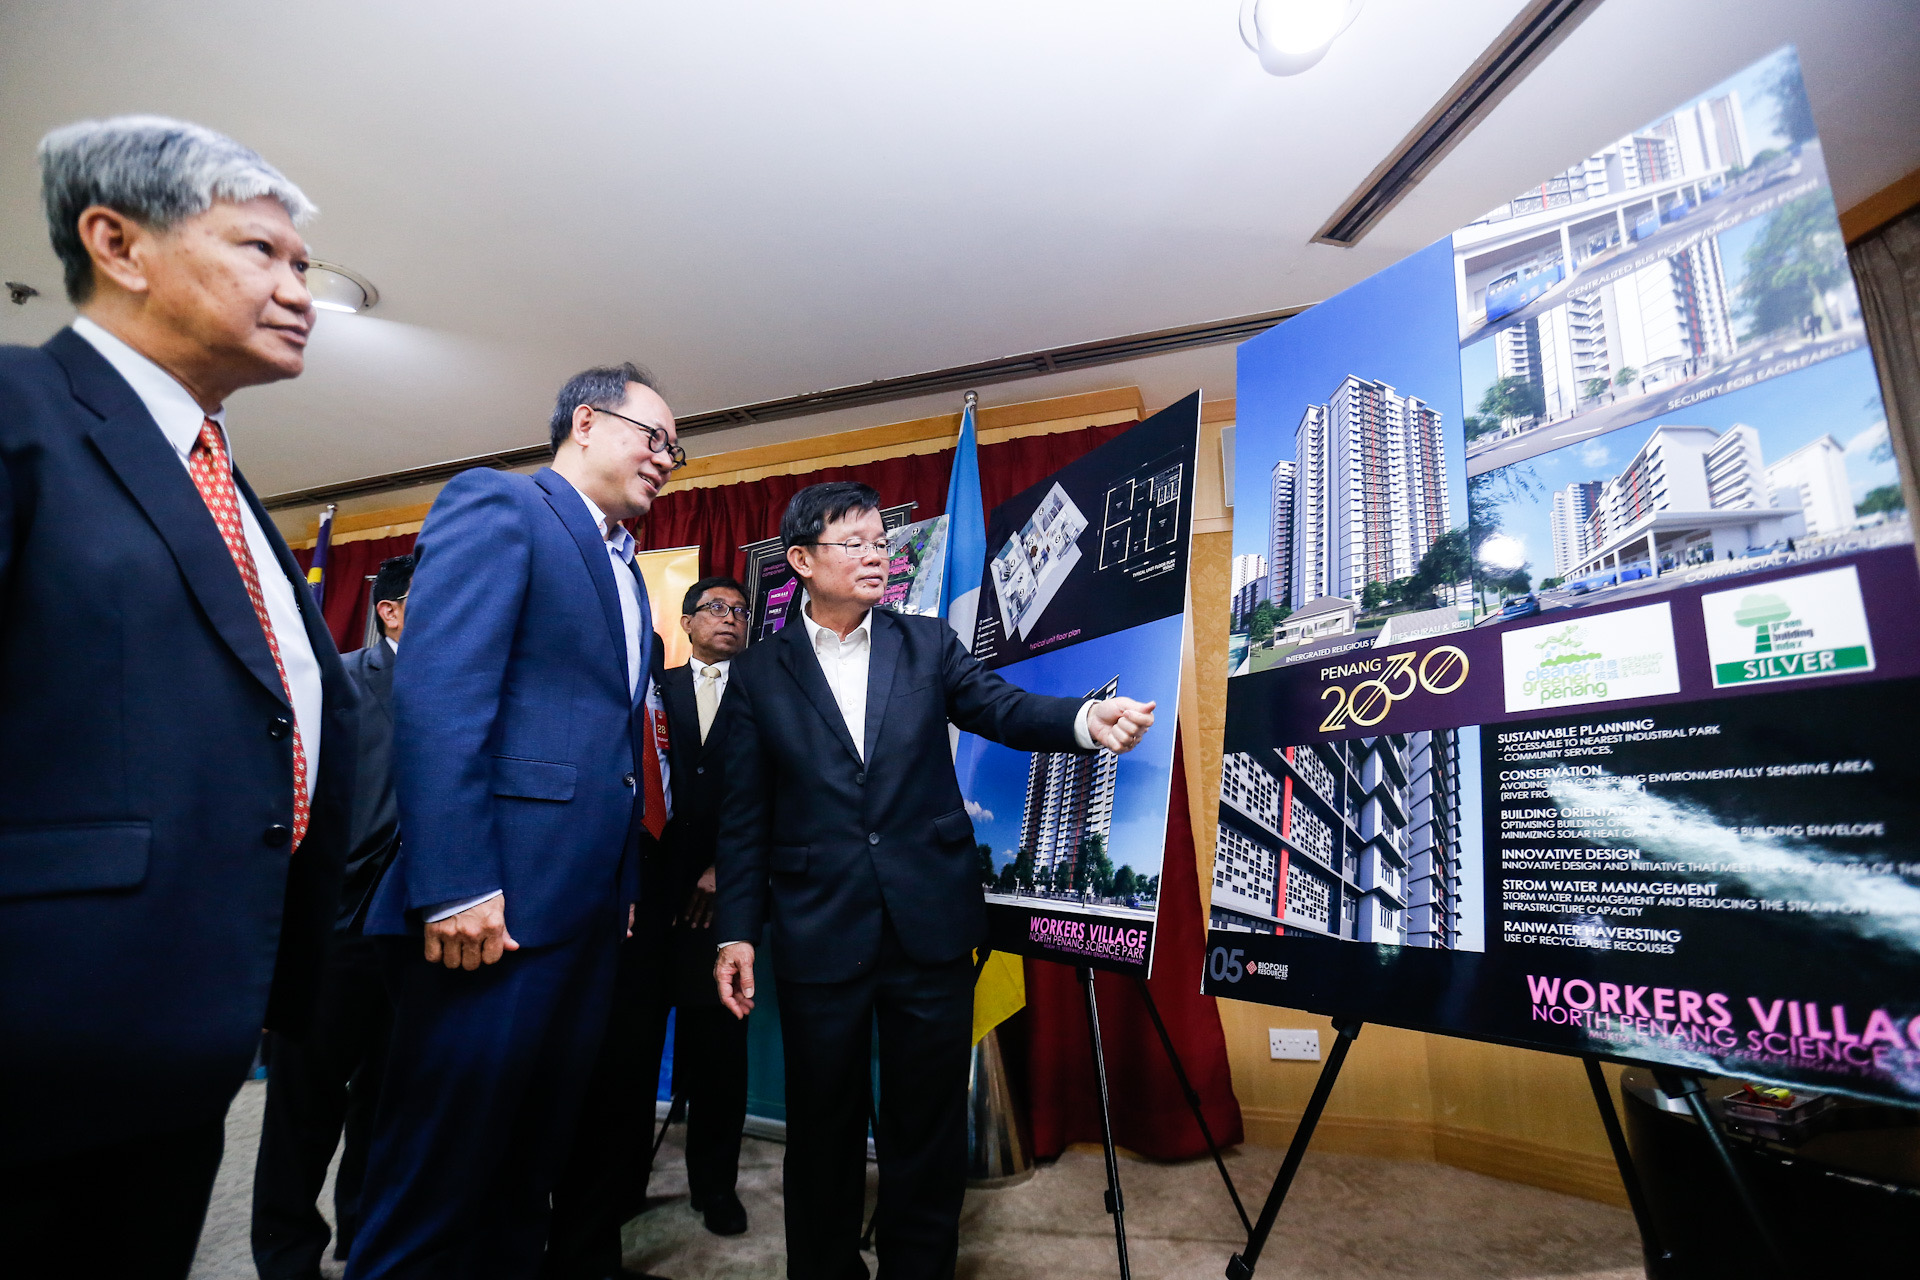 Penang Chief Minister Chow Kon Yeow during the agreement exchange between Penang Development Corporation and Biopolis Resources Sdn Bhd at Komtar January 20, 2020. — Picture by Sayuti Zainudin